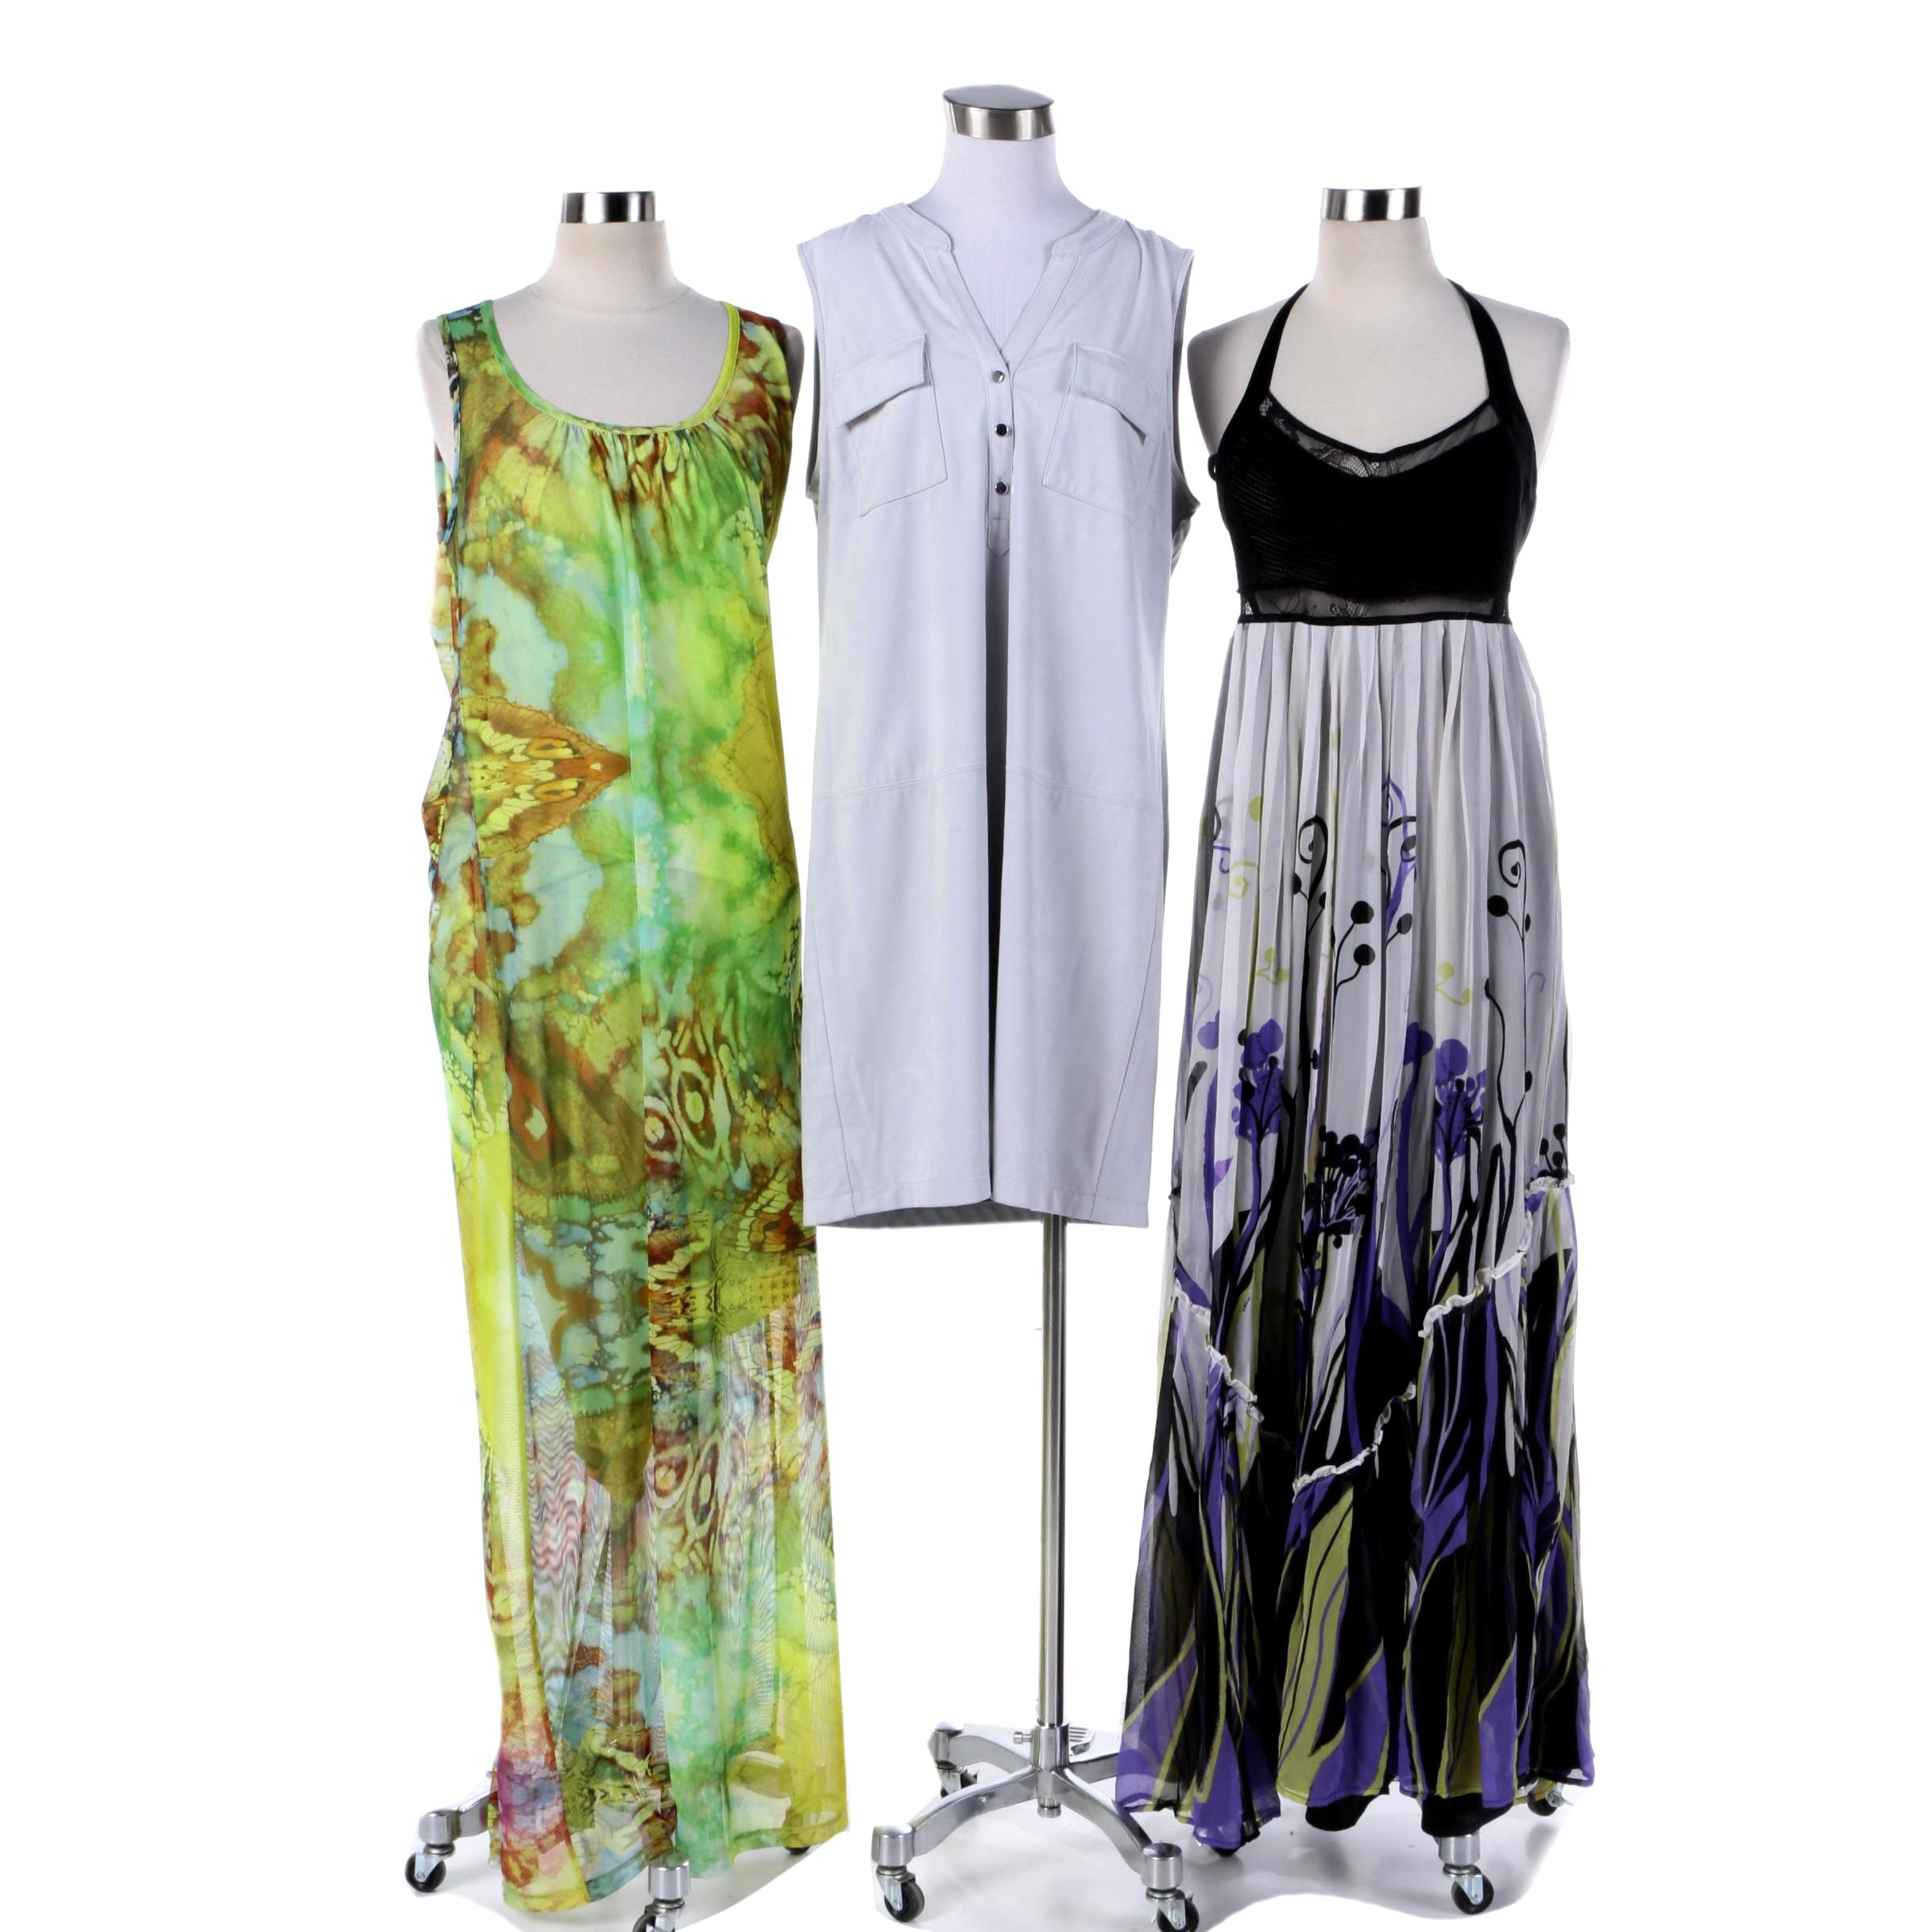 Women's Bebe, Alfani and Mesmerize Dresses